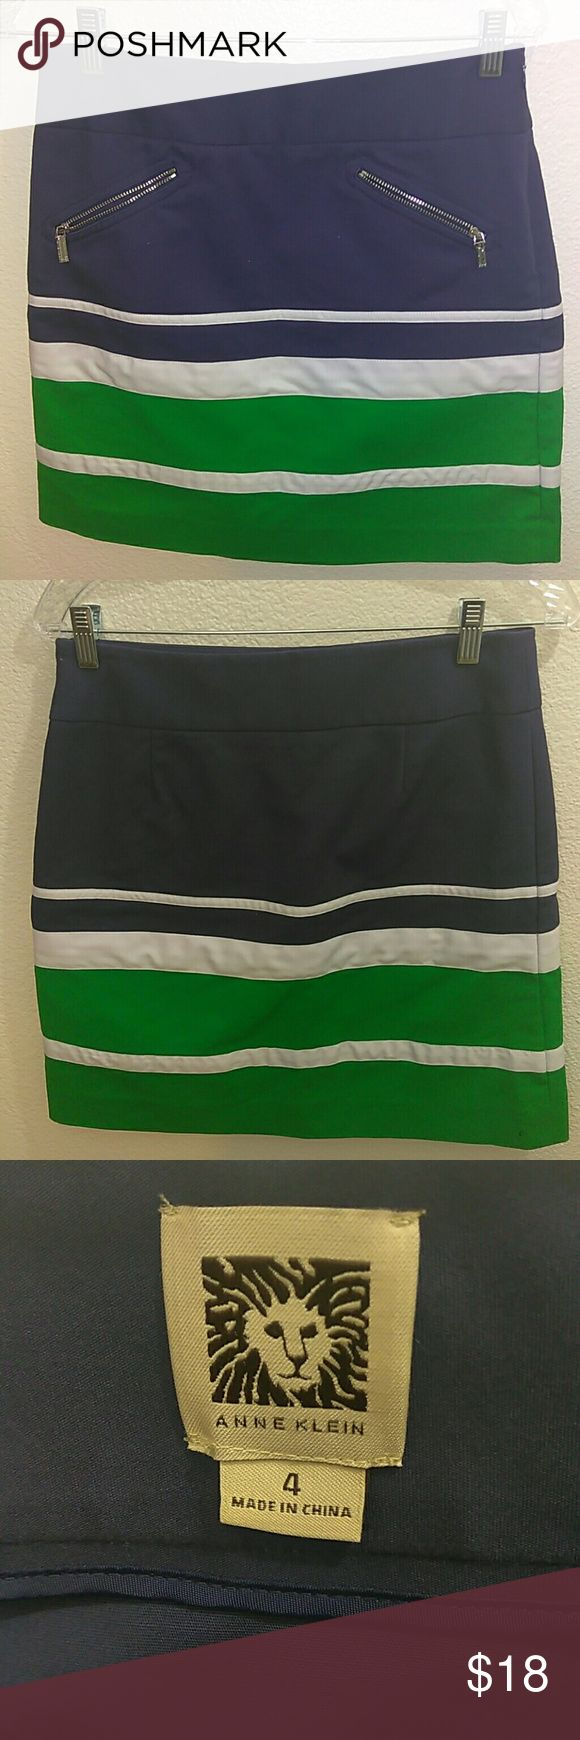 Anne Klein Woman's mini skirt Anne Klein striped color block pencil skirt...Waist:30 inches... Length:18 inches Anne Klein Skirts Mini